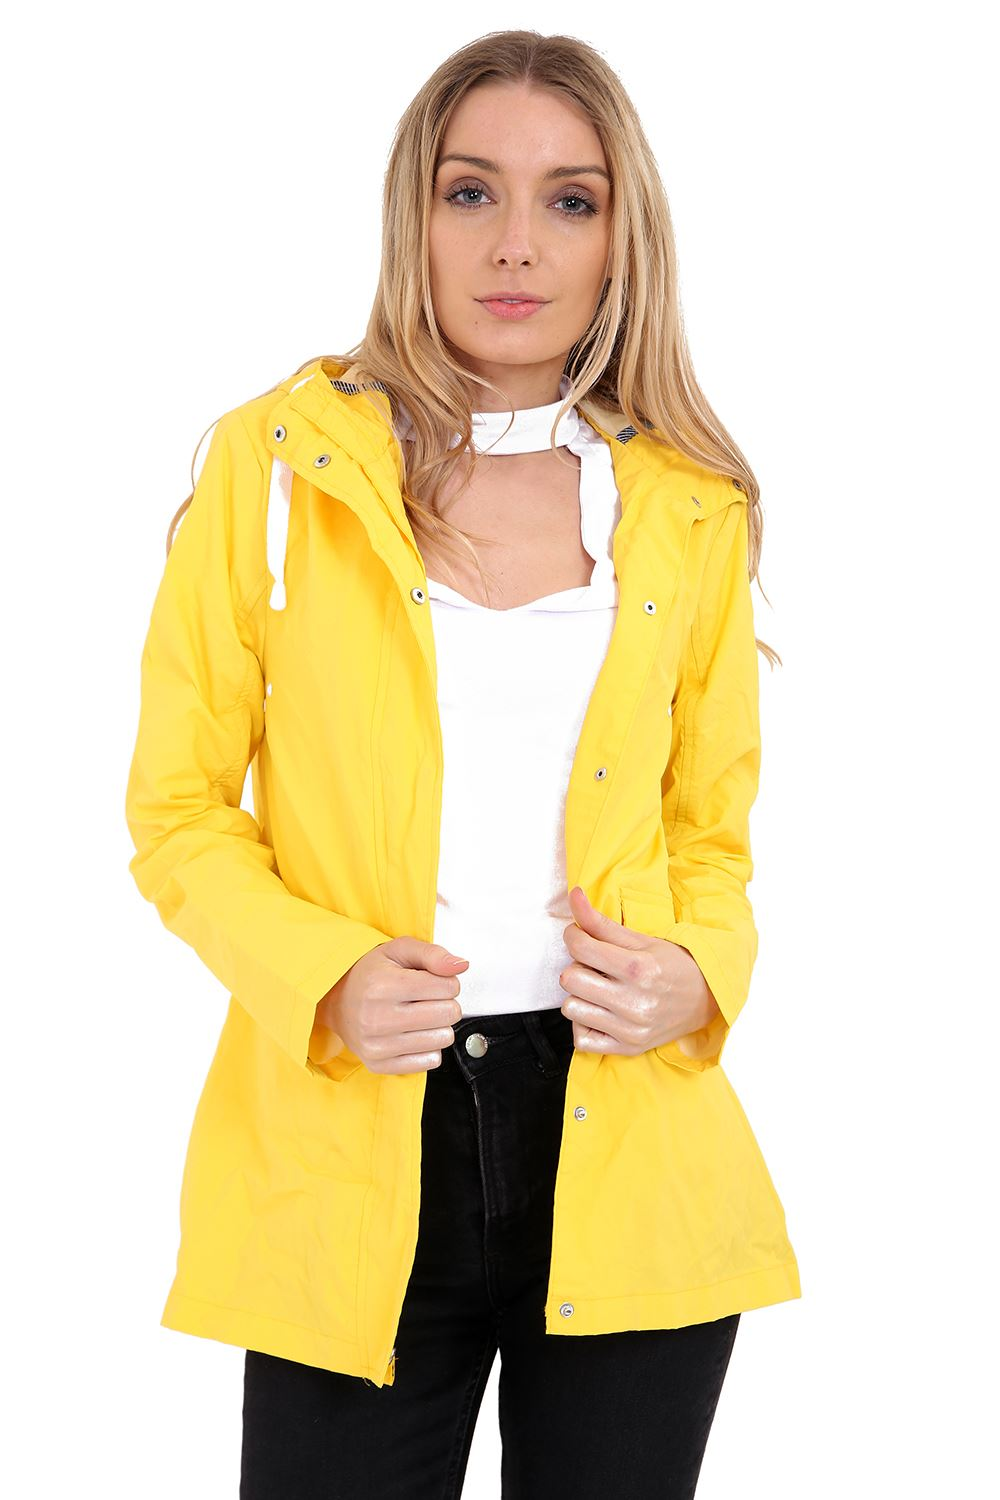 Fashionable jackets for women